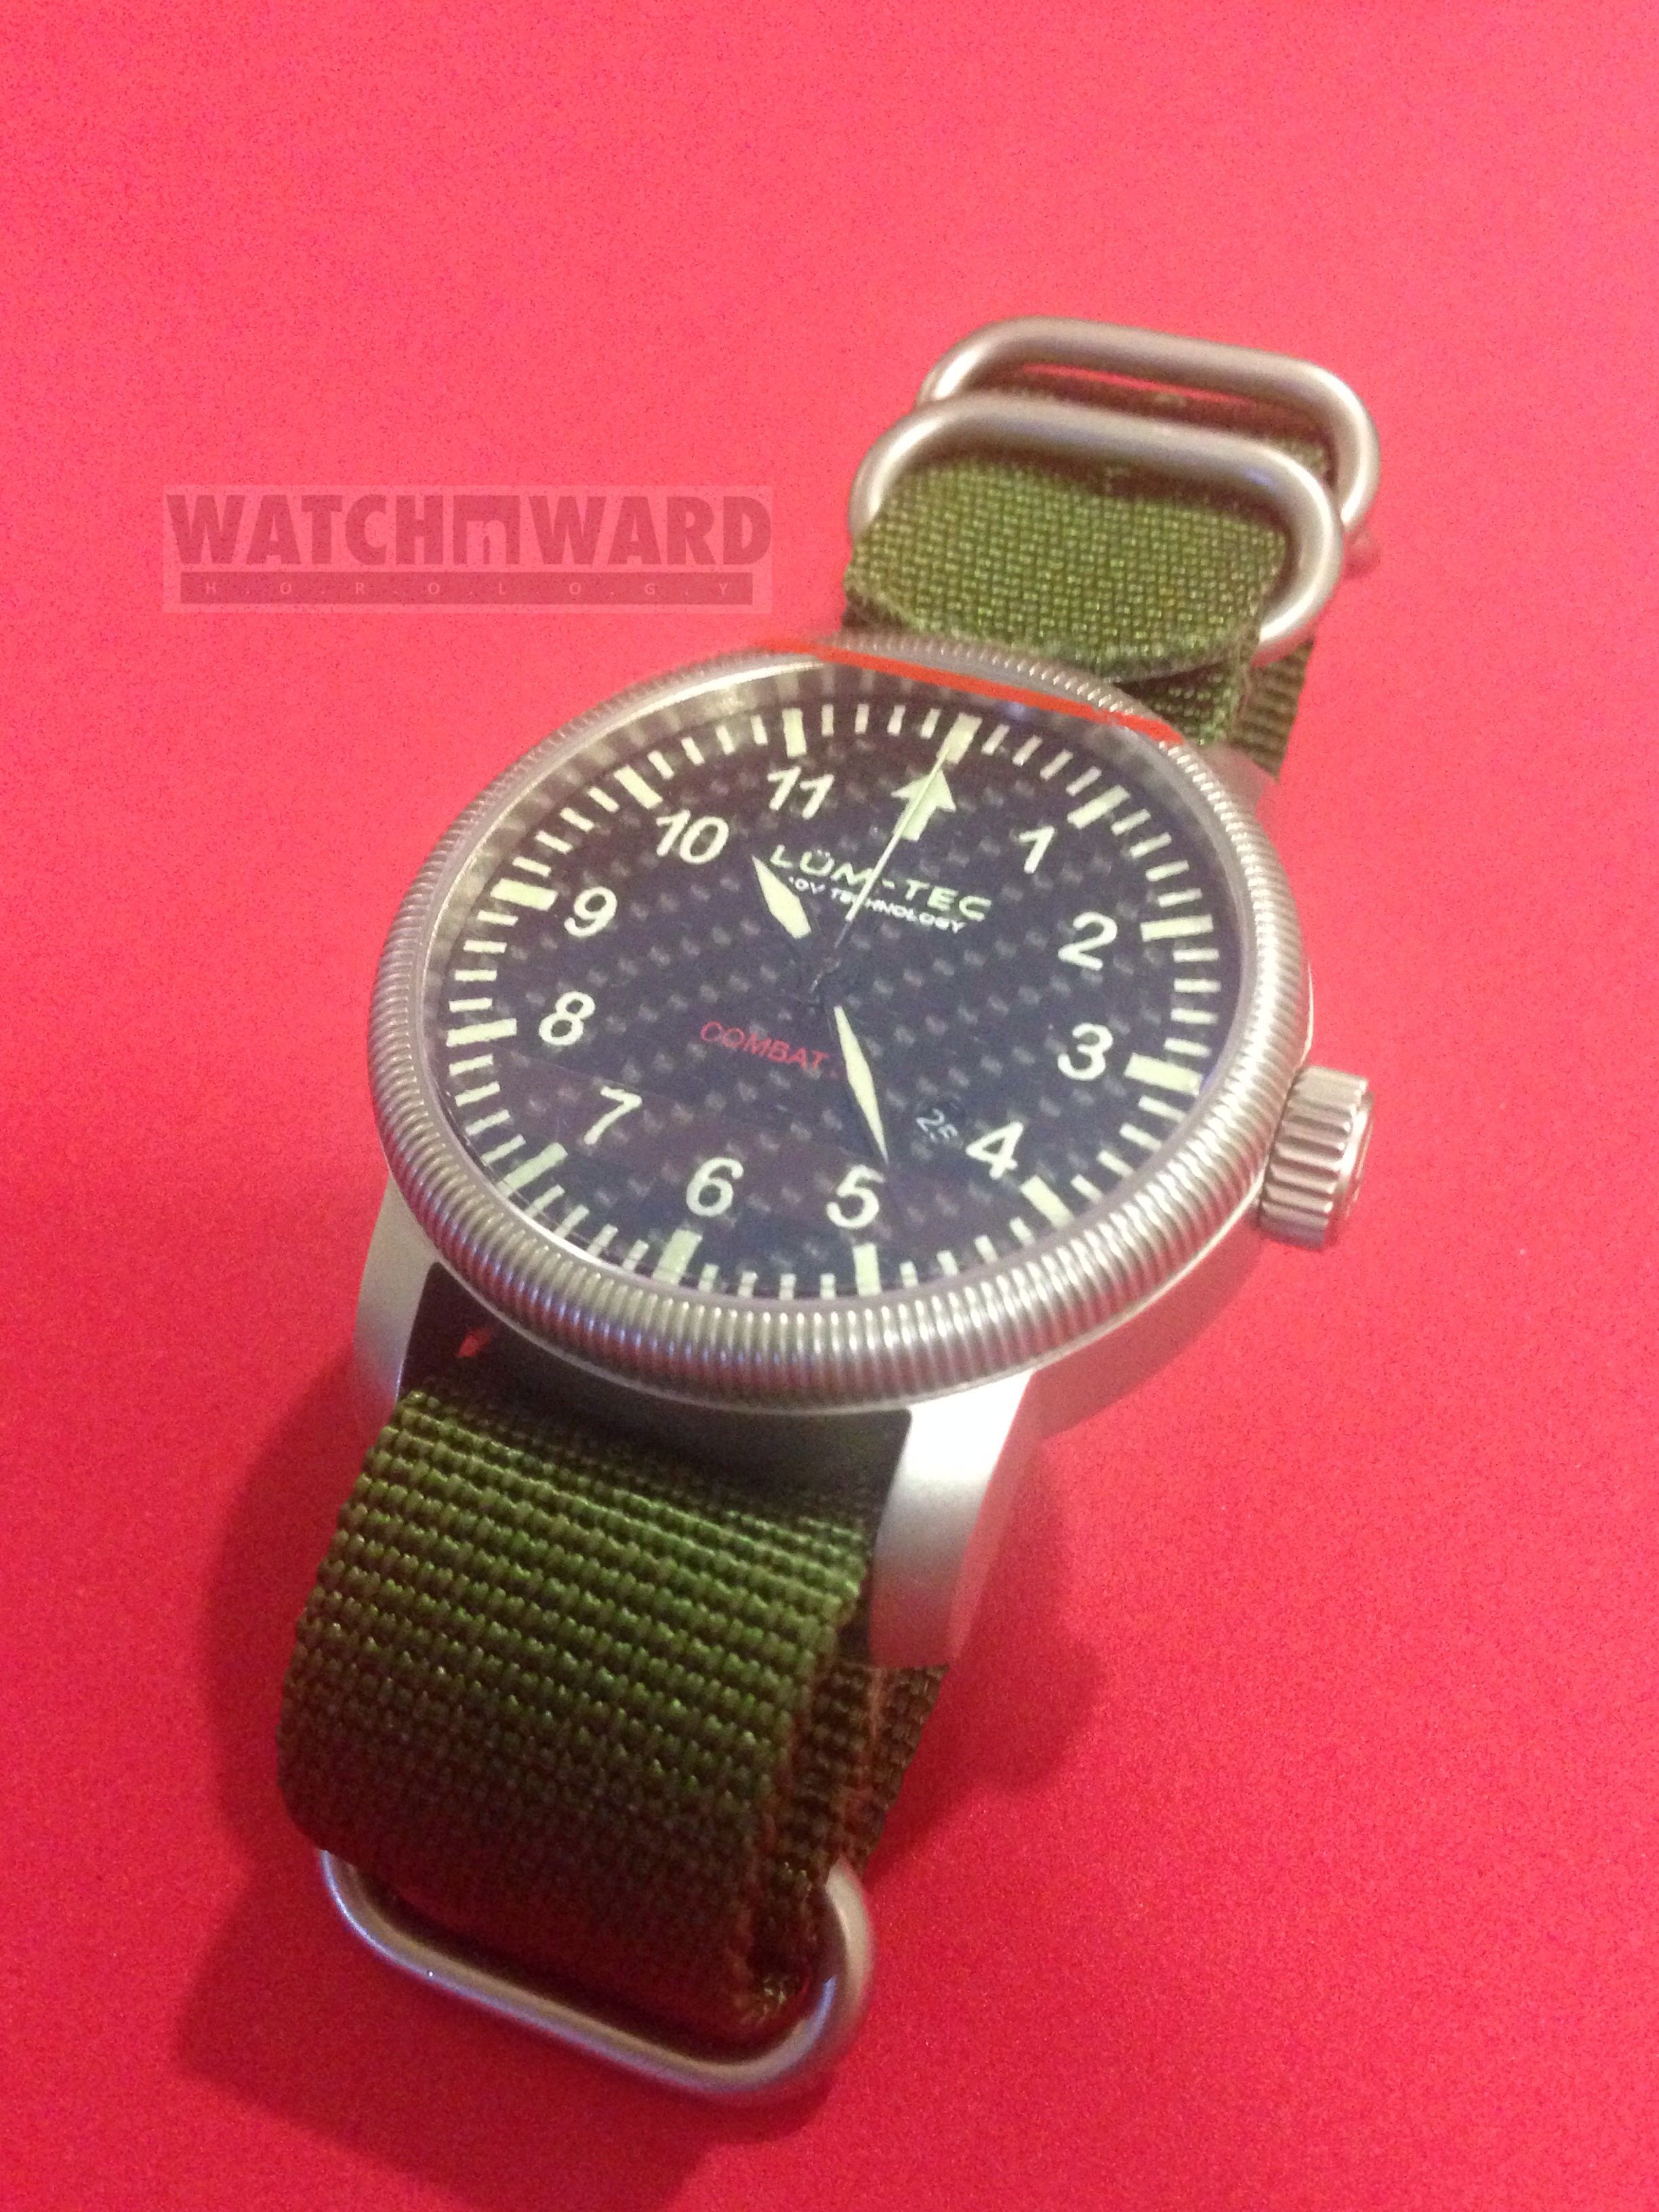 combat product rs img isellwatchesisellwatches gmt watches